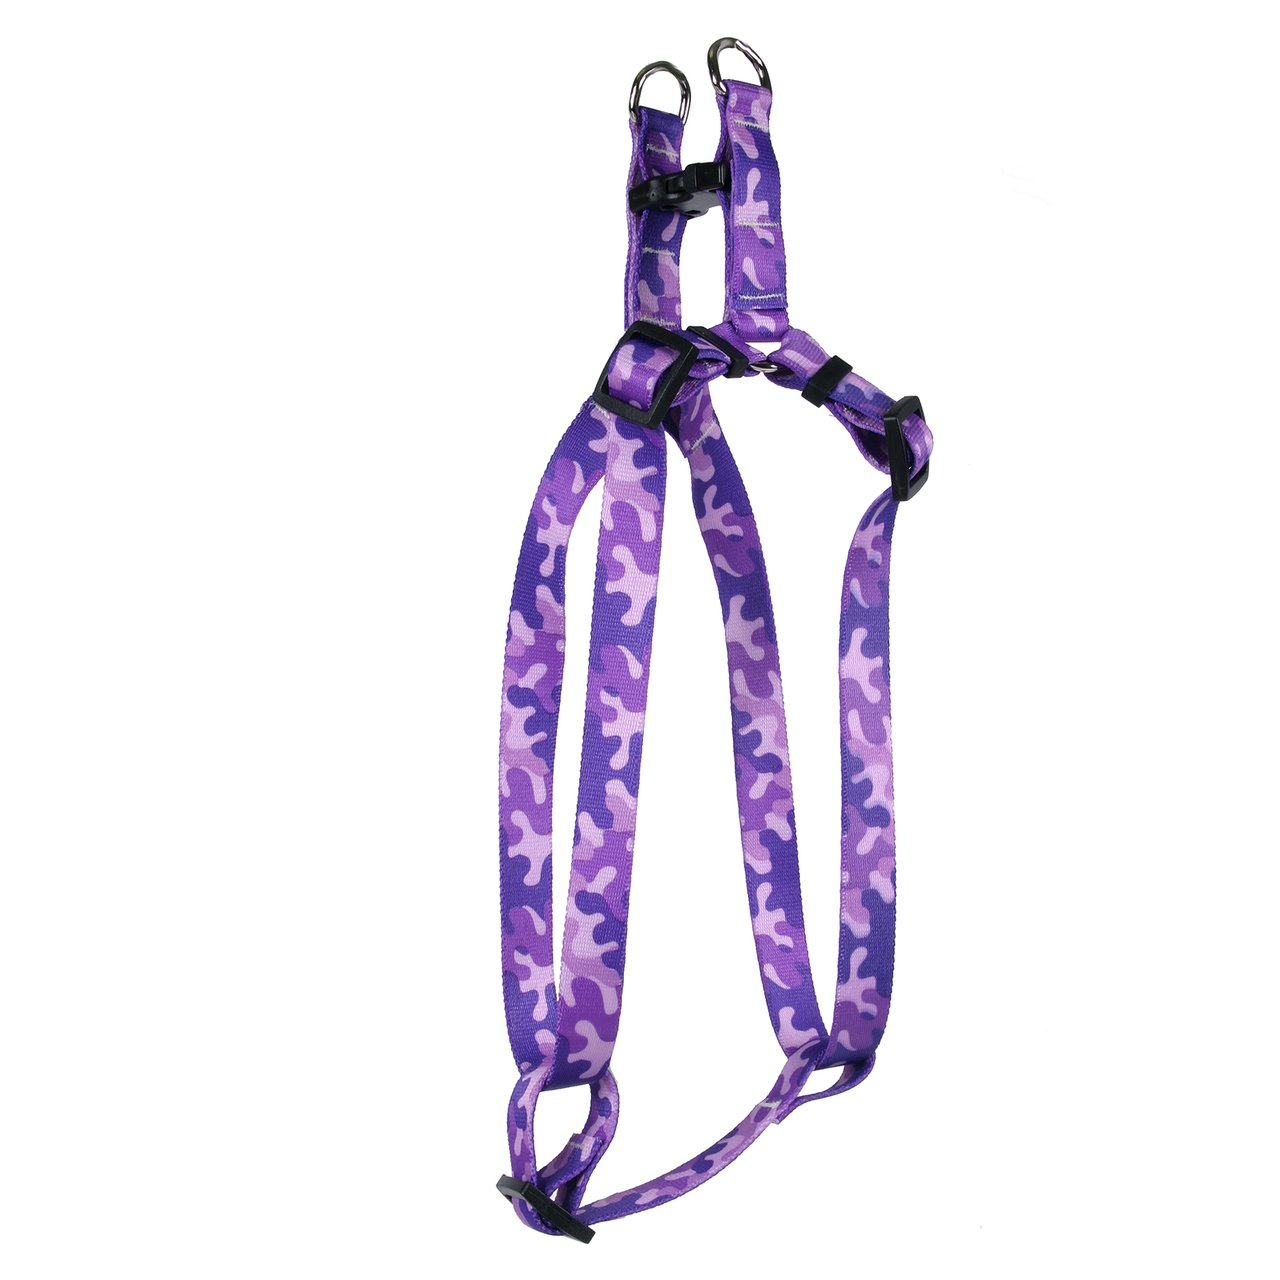 Yellow Dog Design Camo Purple Step-in Dog Harness 3/4'' Wide and Fits Chest Circumference of 15 to 25'', Medium